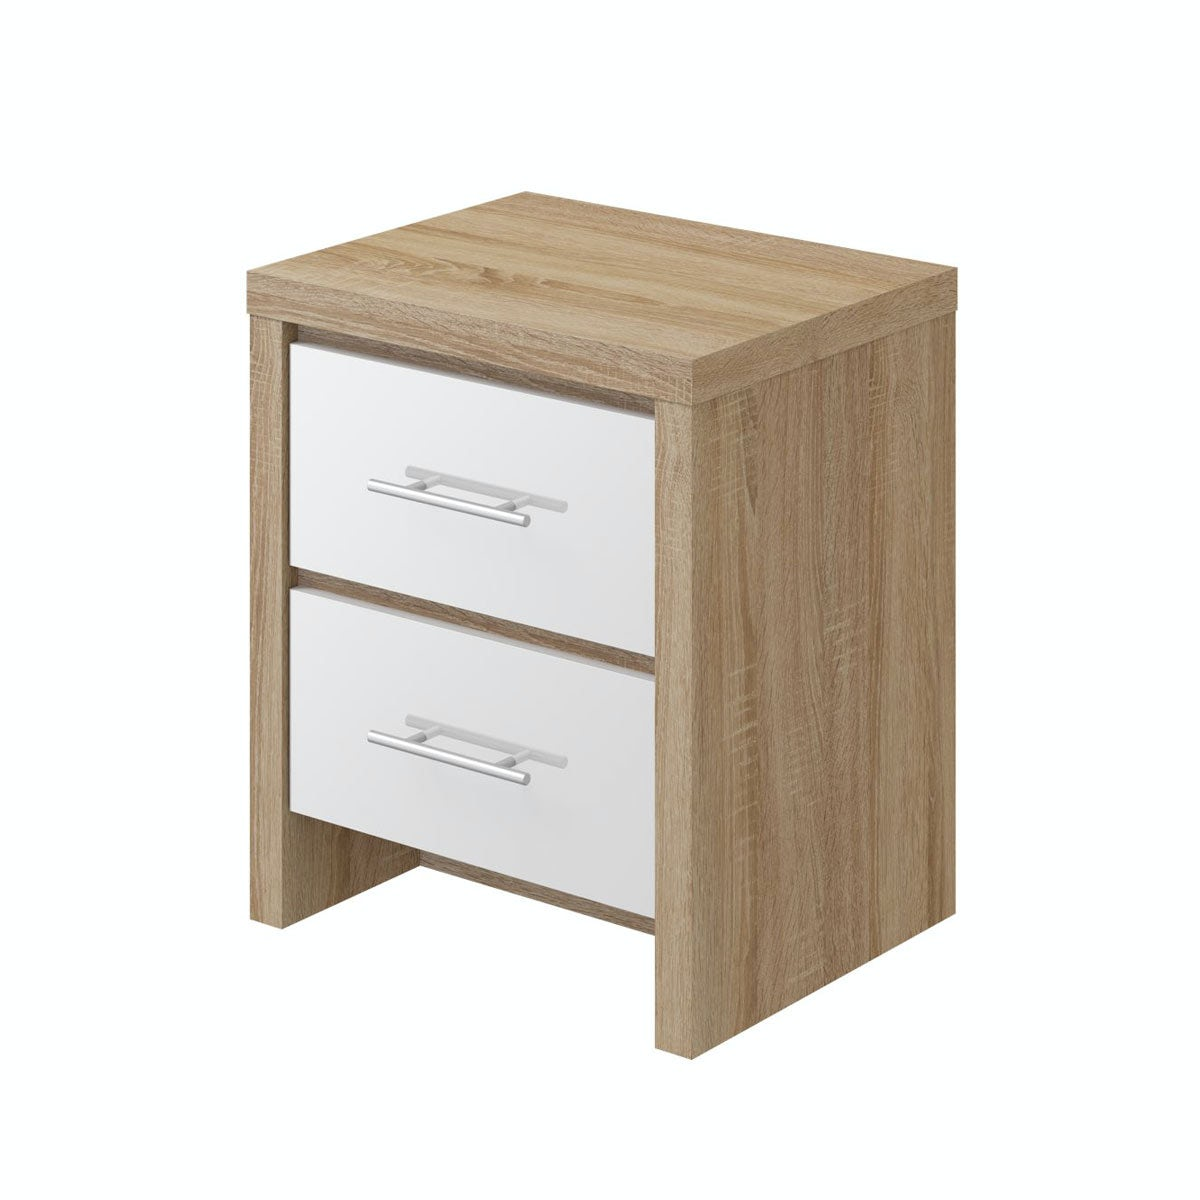 London Oak & White Gloss 2 Drawer bedside Oak/White Gloss